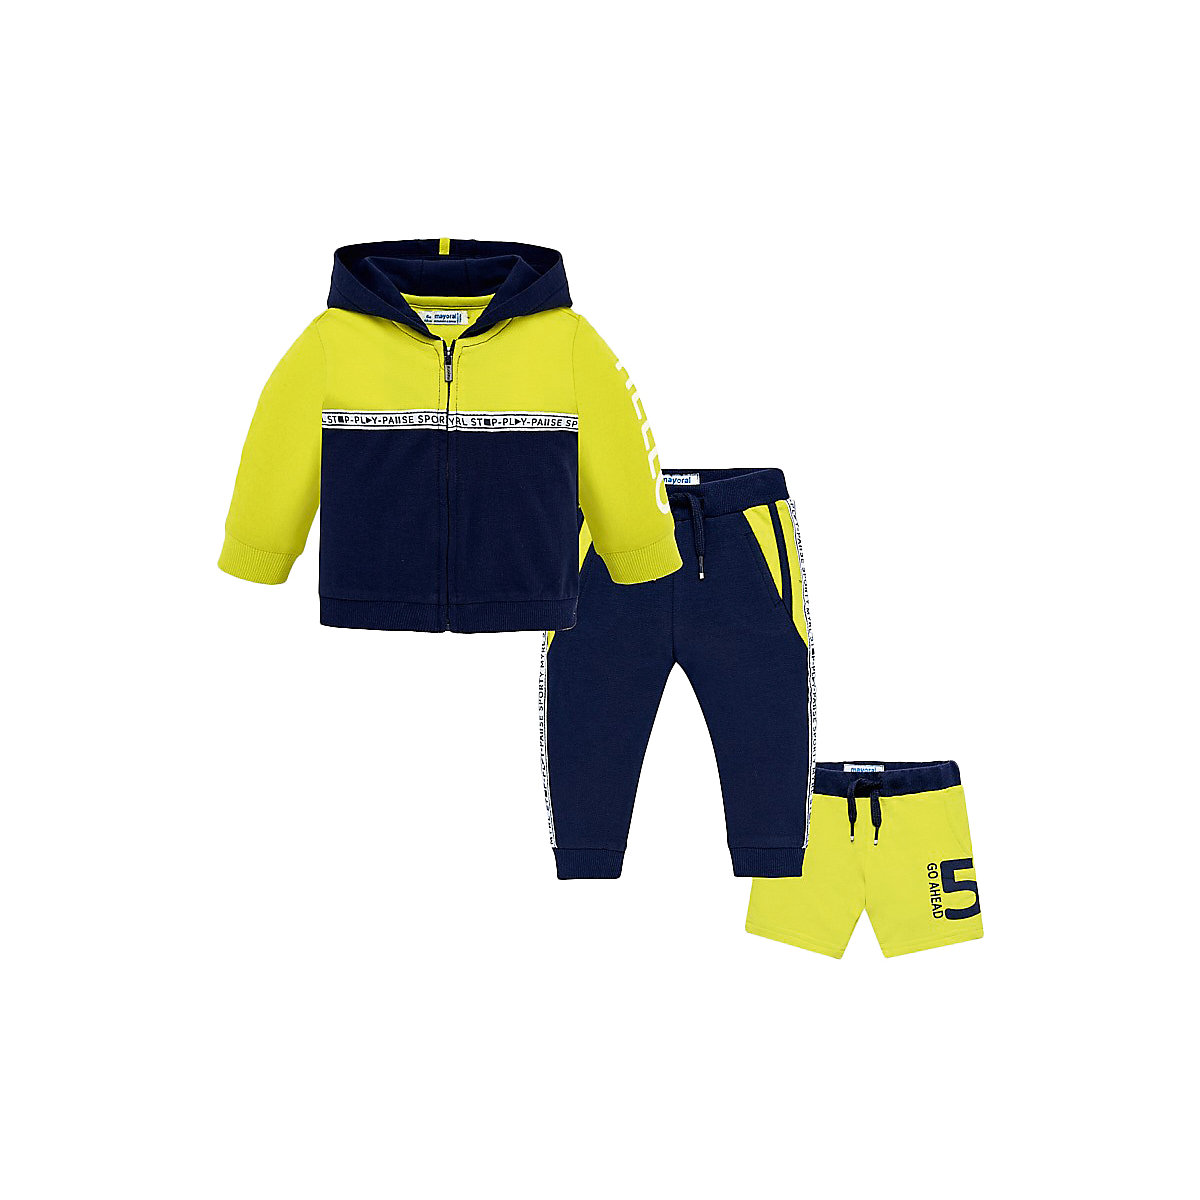 Children Two-Piece Suits Mayoral 10685162 Children Sportswear Accessories Costumes For The Child